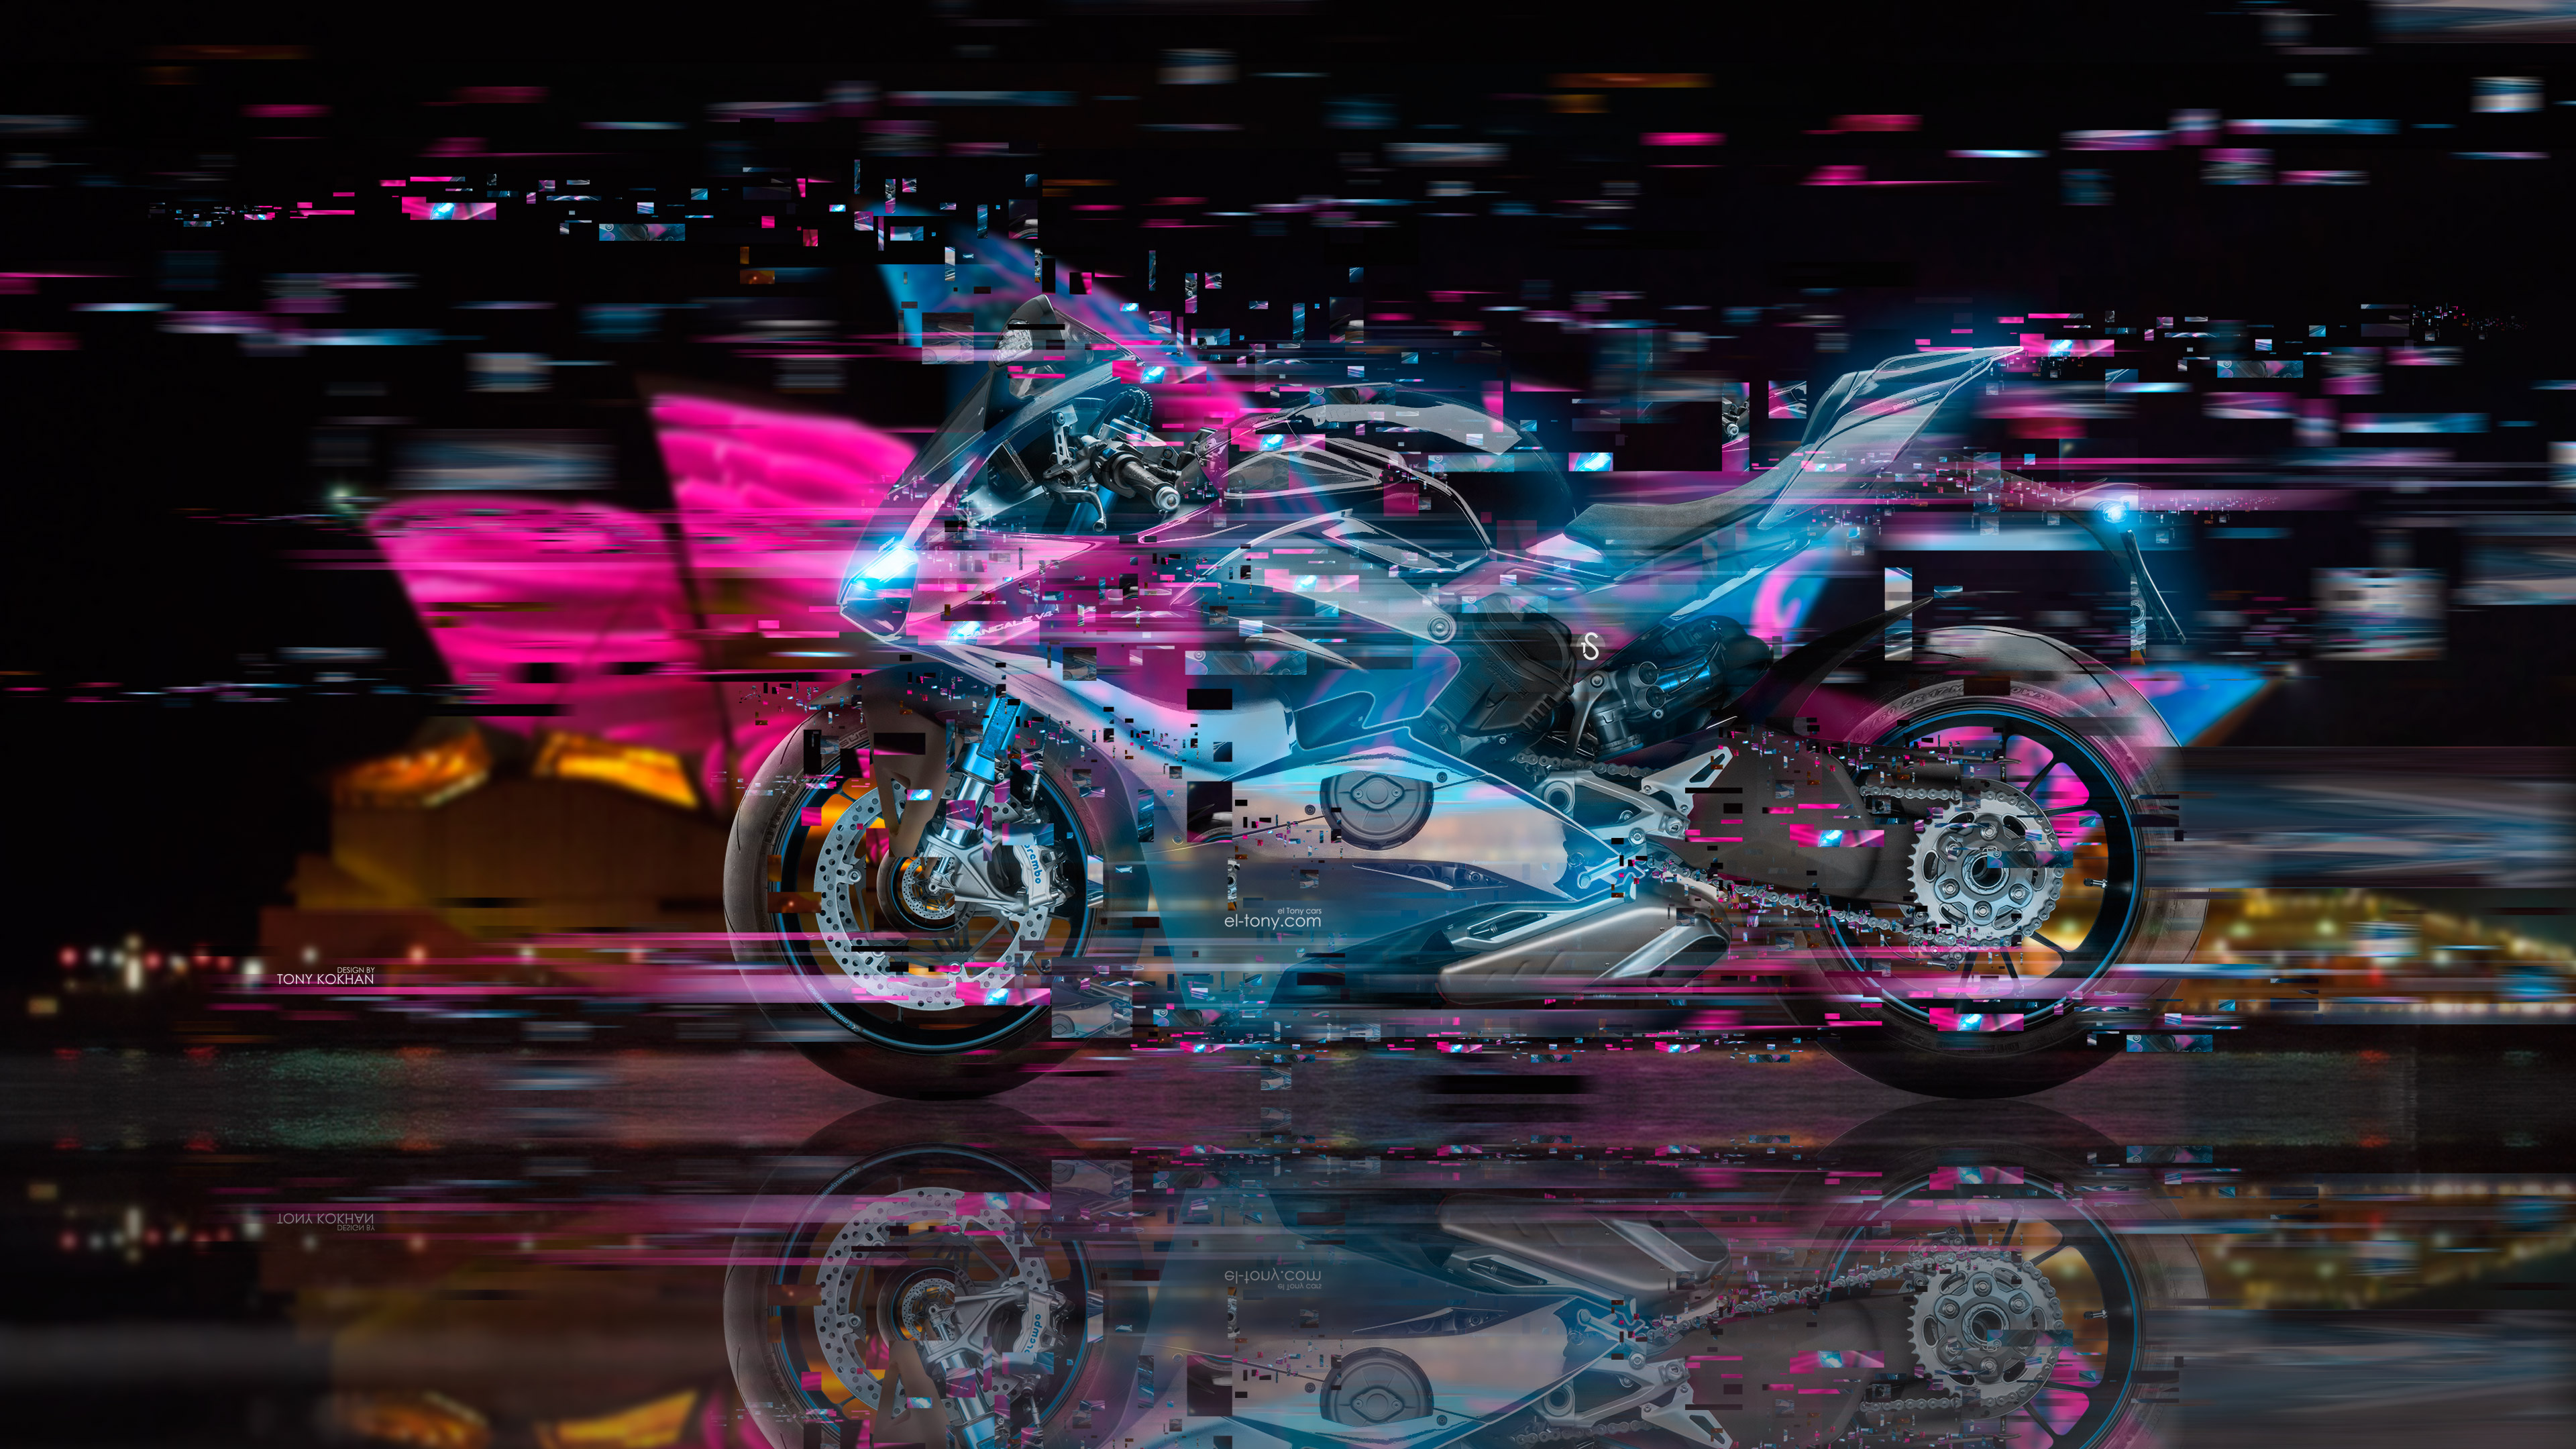 Suzuki Hayabusa Fantasy Fire Panther 2013 · Moto Ducati Panigale V4 Super  Crystal City Night Singapore Neural Network Art Bike 2018